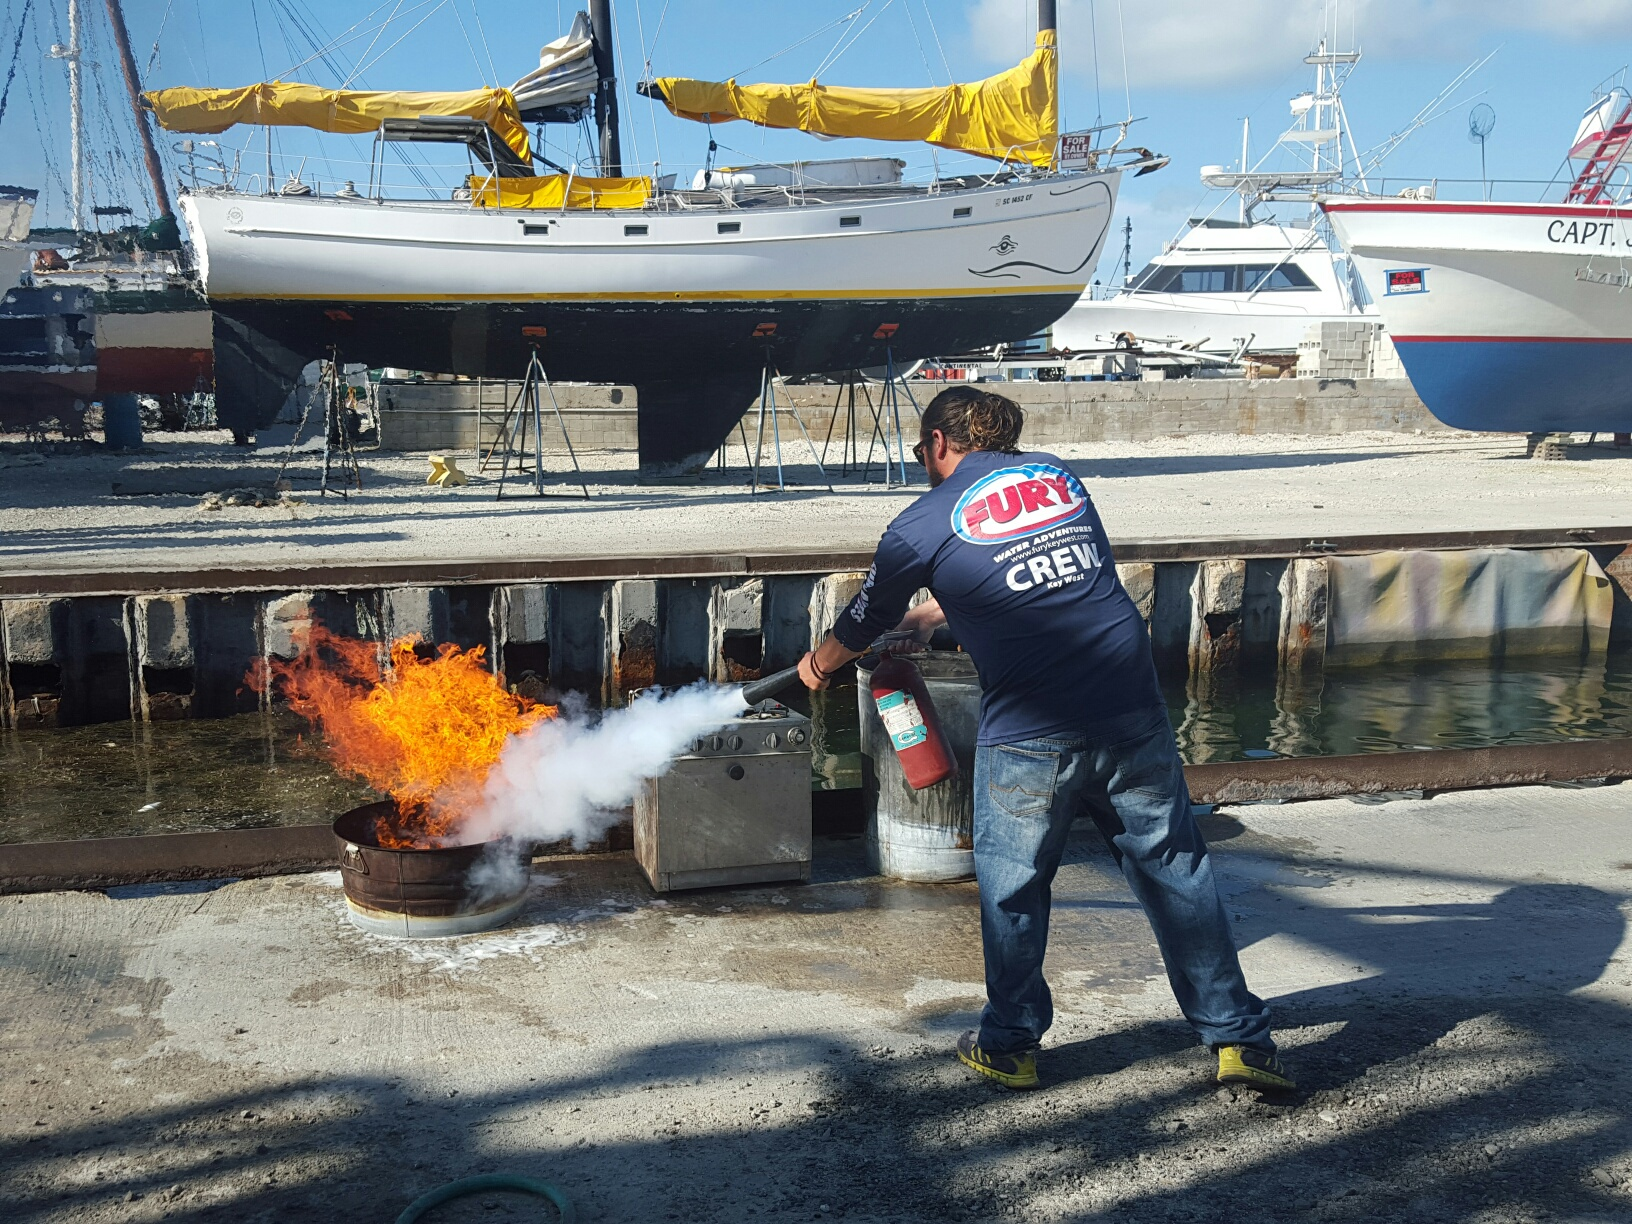 STCW Basic 5 day for unlimited size vessels 03/11/2019-03/15/2019 9am-5pm